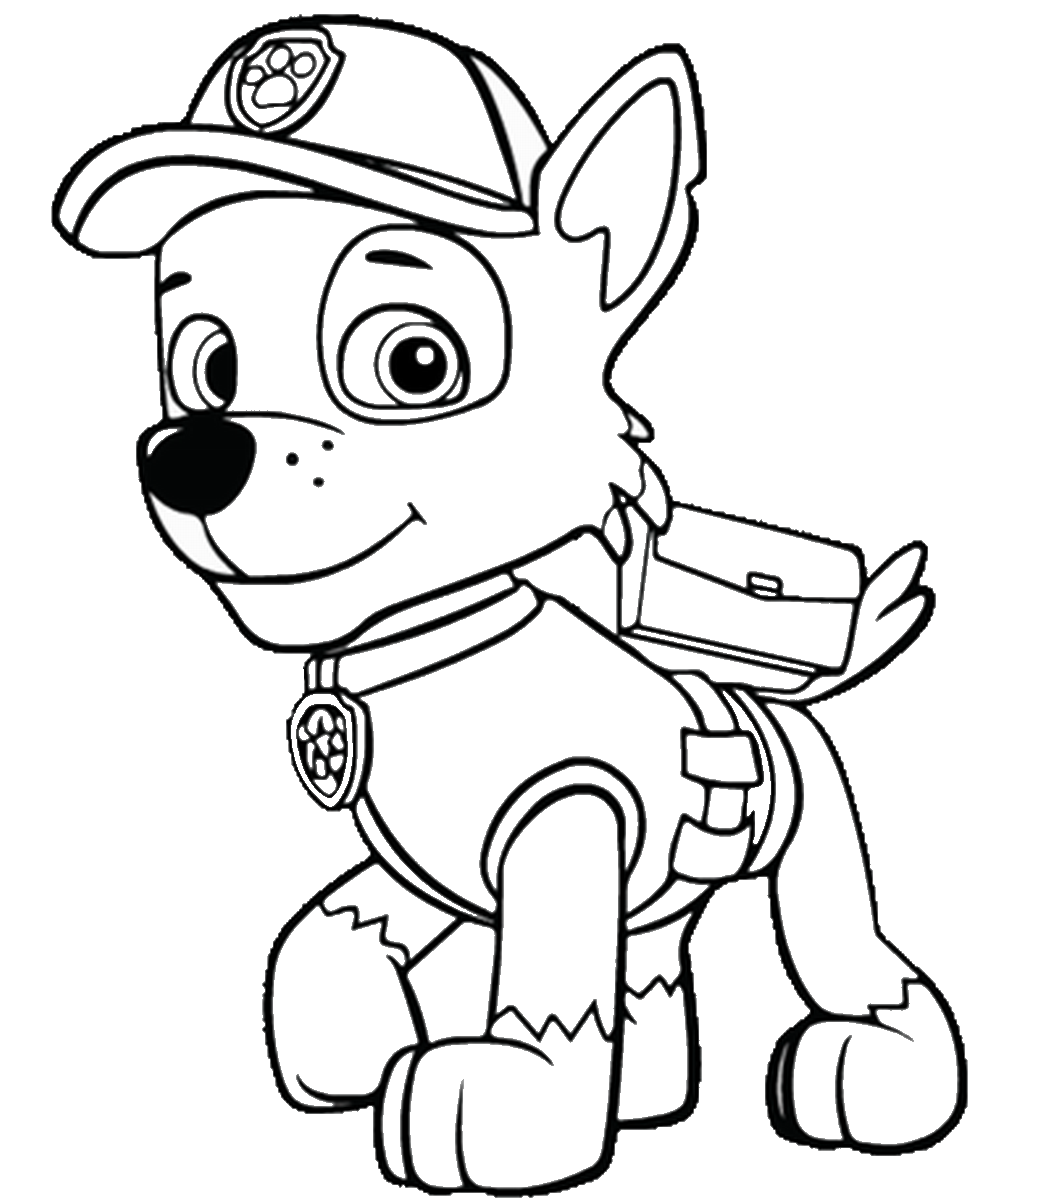 Paw Patrol Coloring Pages : Free coloring pages of paw patrol